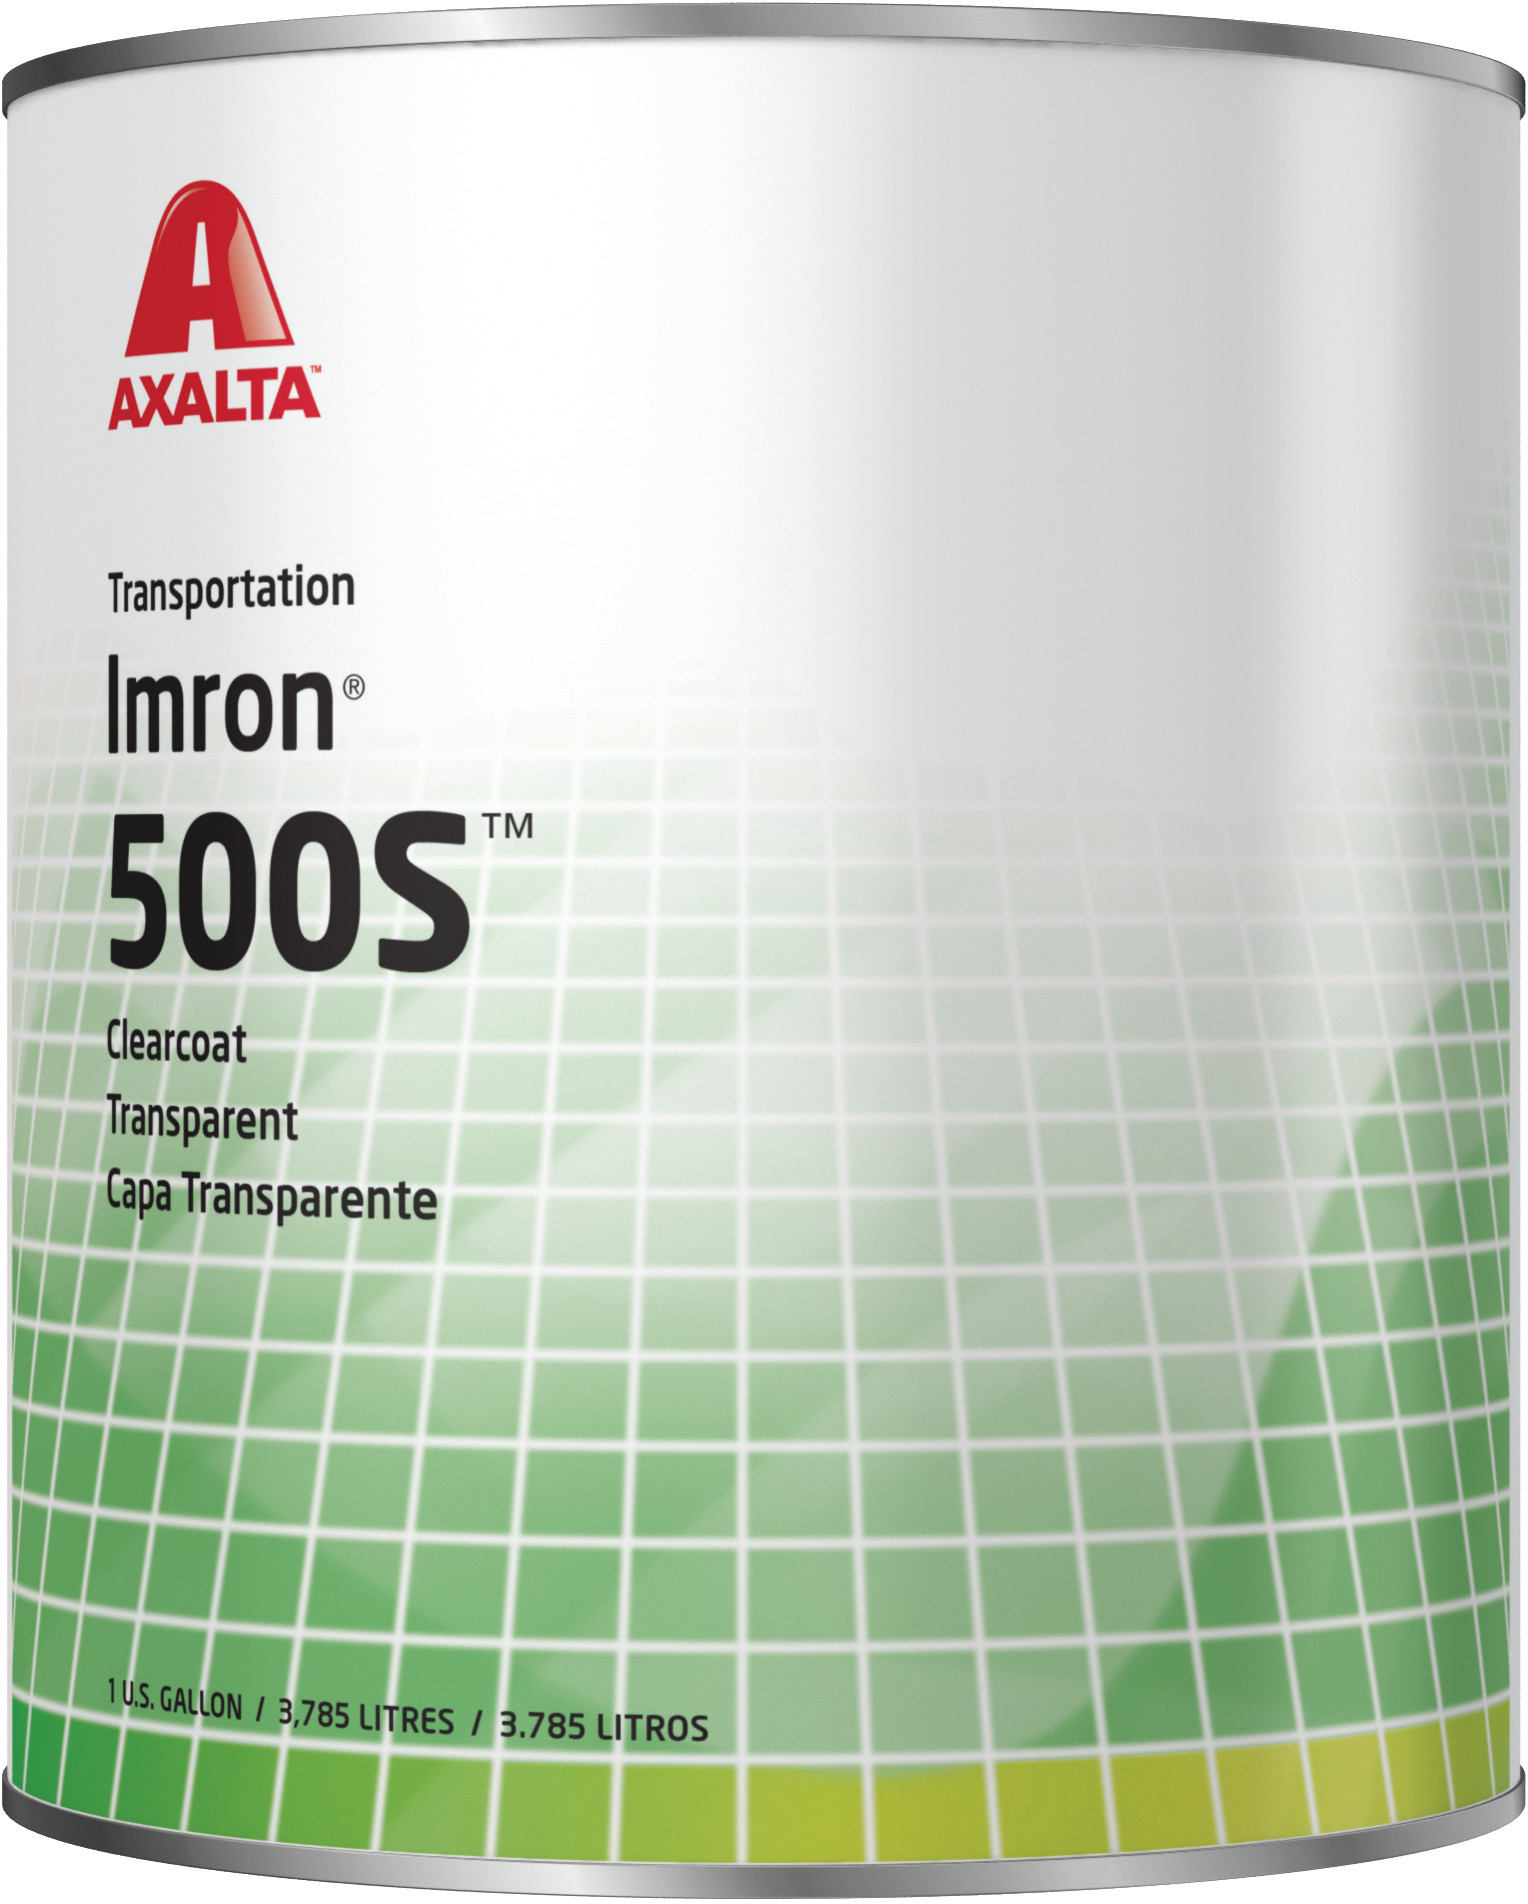 Axalta Transportation 500s Imron Clearcoat Gallon